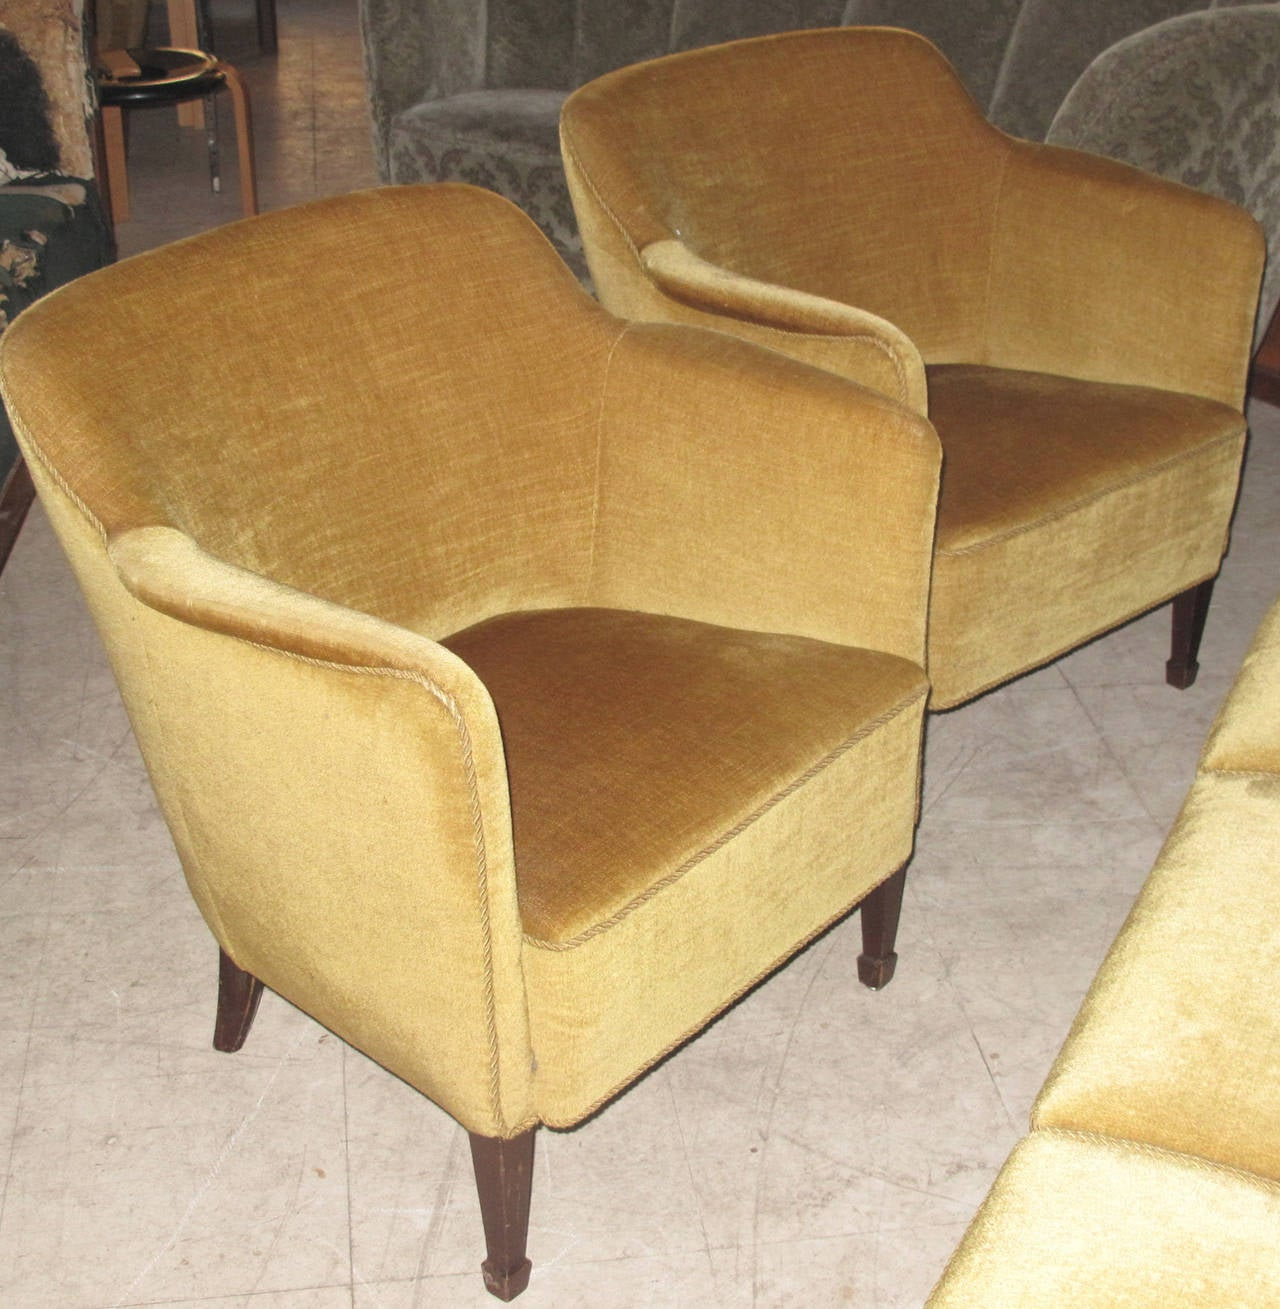 Danish 1940s Mohair Upholstered Three Seat Sofa And Pair Of Tub Chairs At 1stdibs